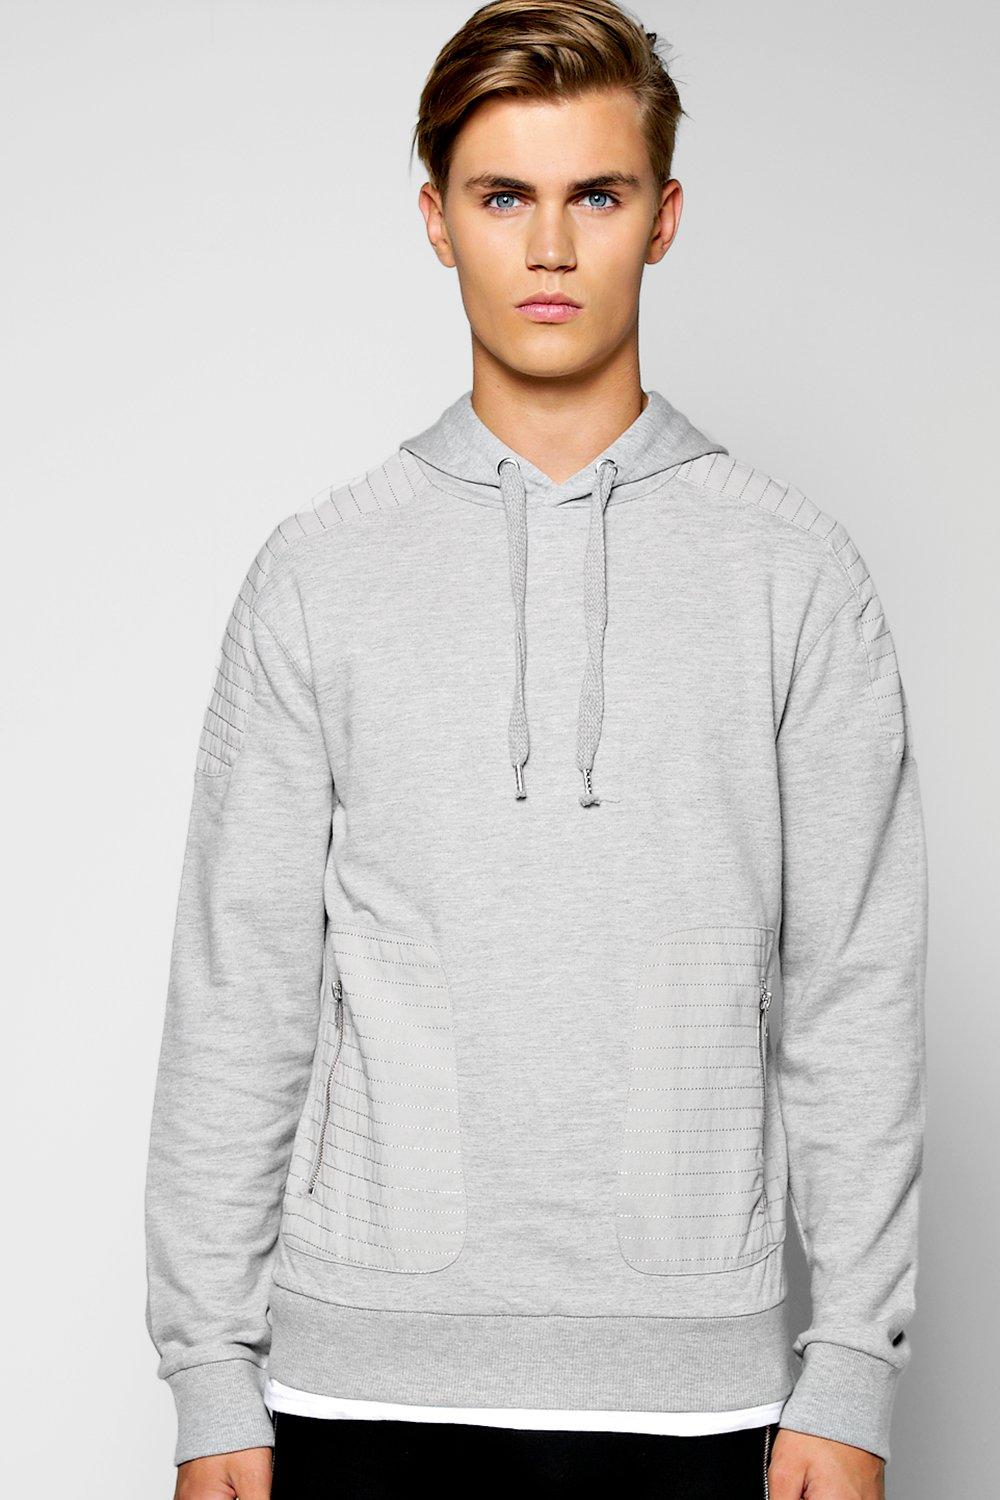 Panelled Cuffed Hoody With Zip Details